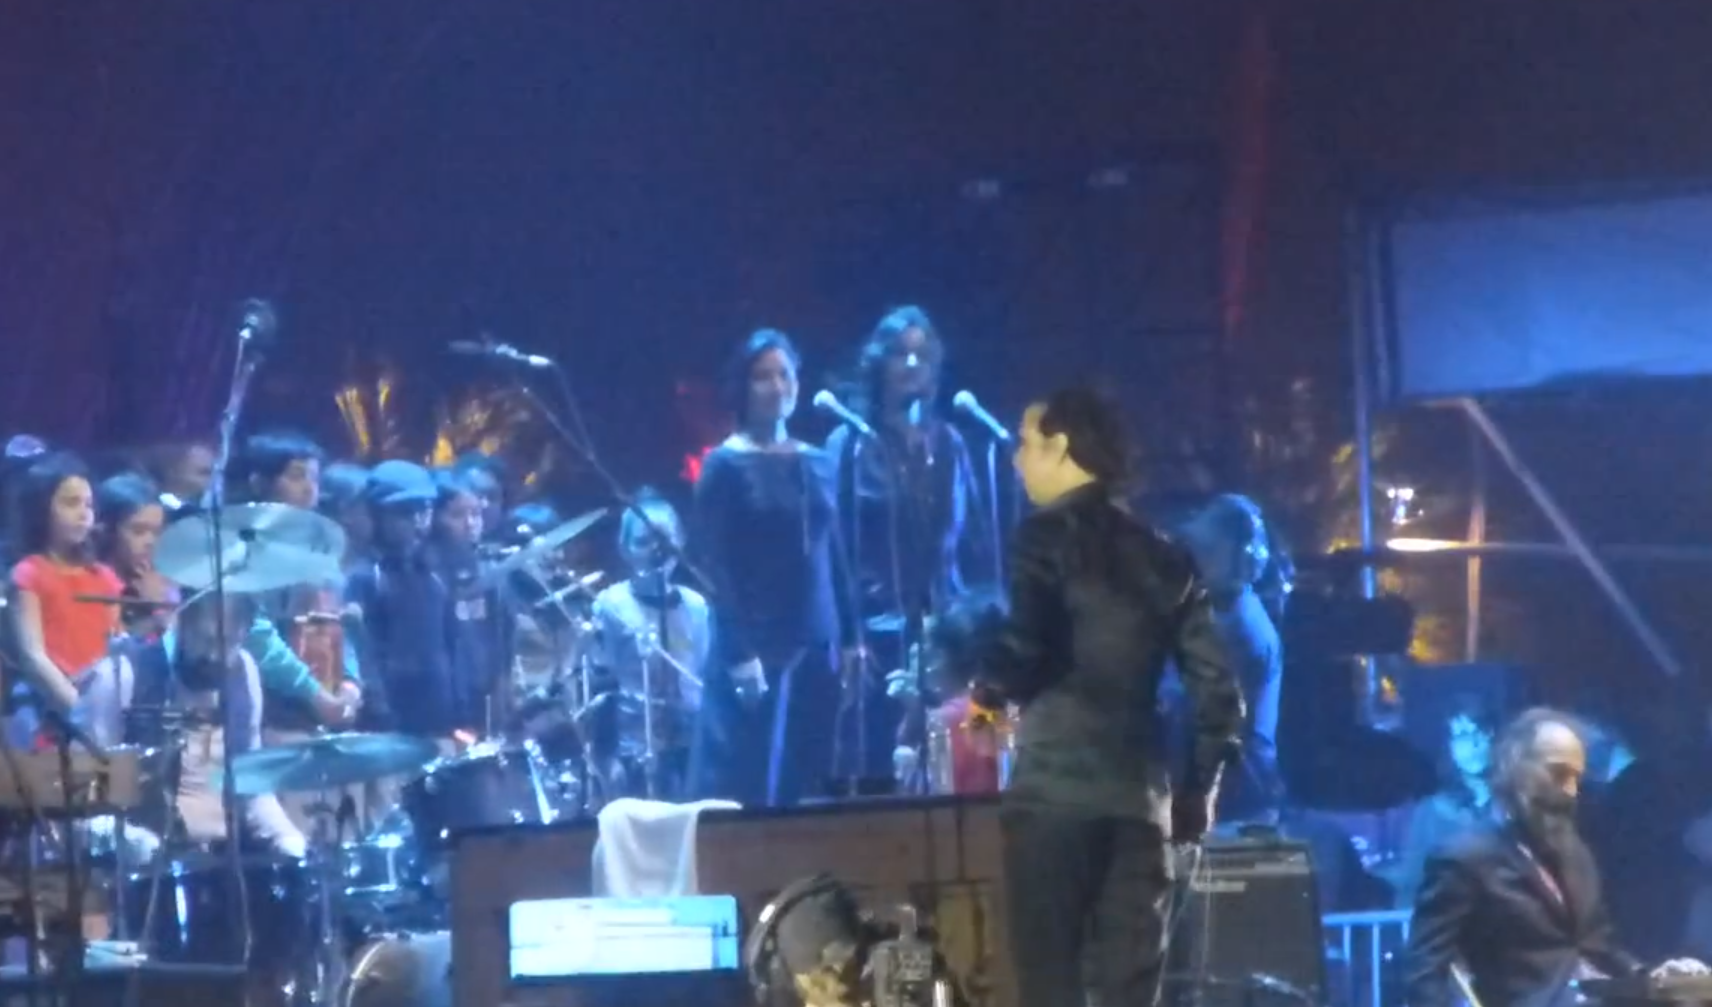 Coachella 2013 - Nick Cave and The Bad Seeds, Push the Sky Away LIVE